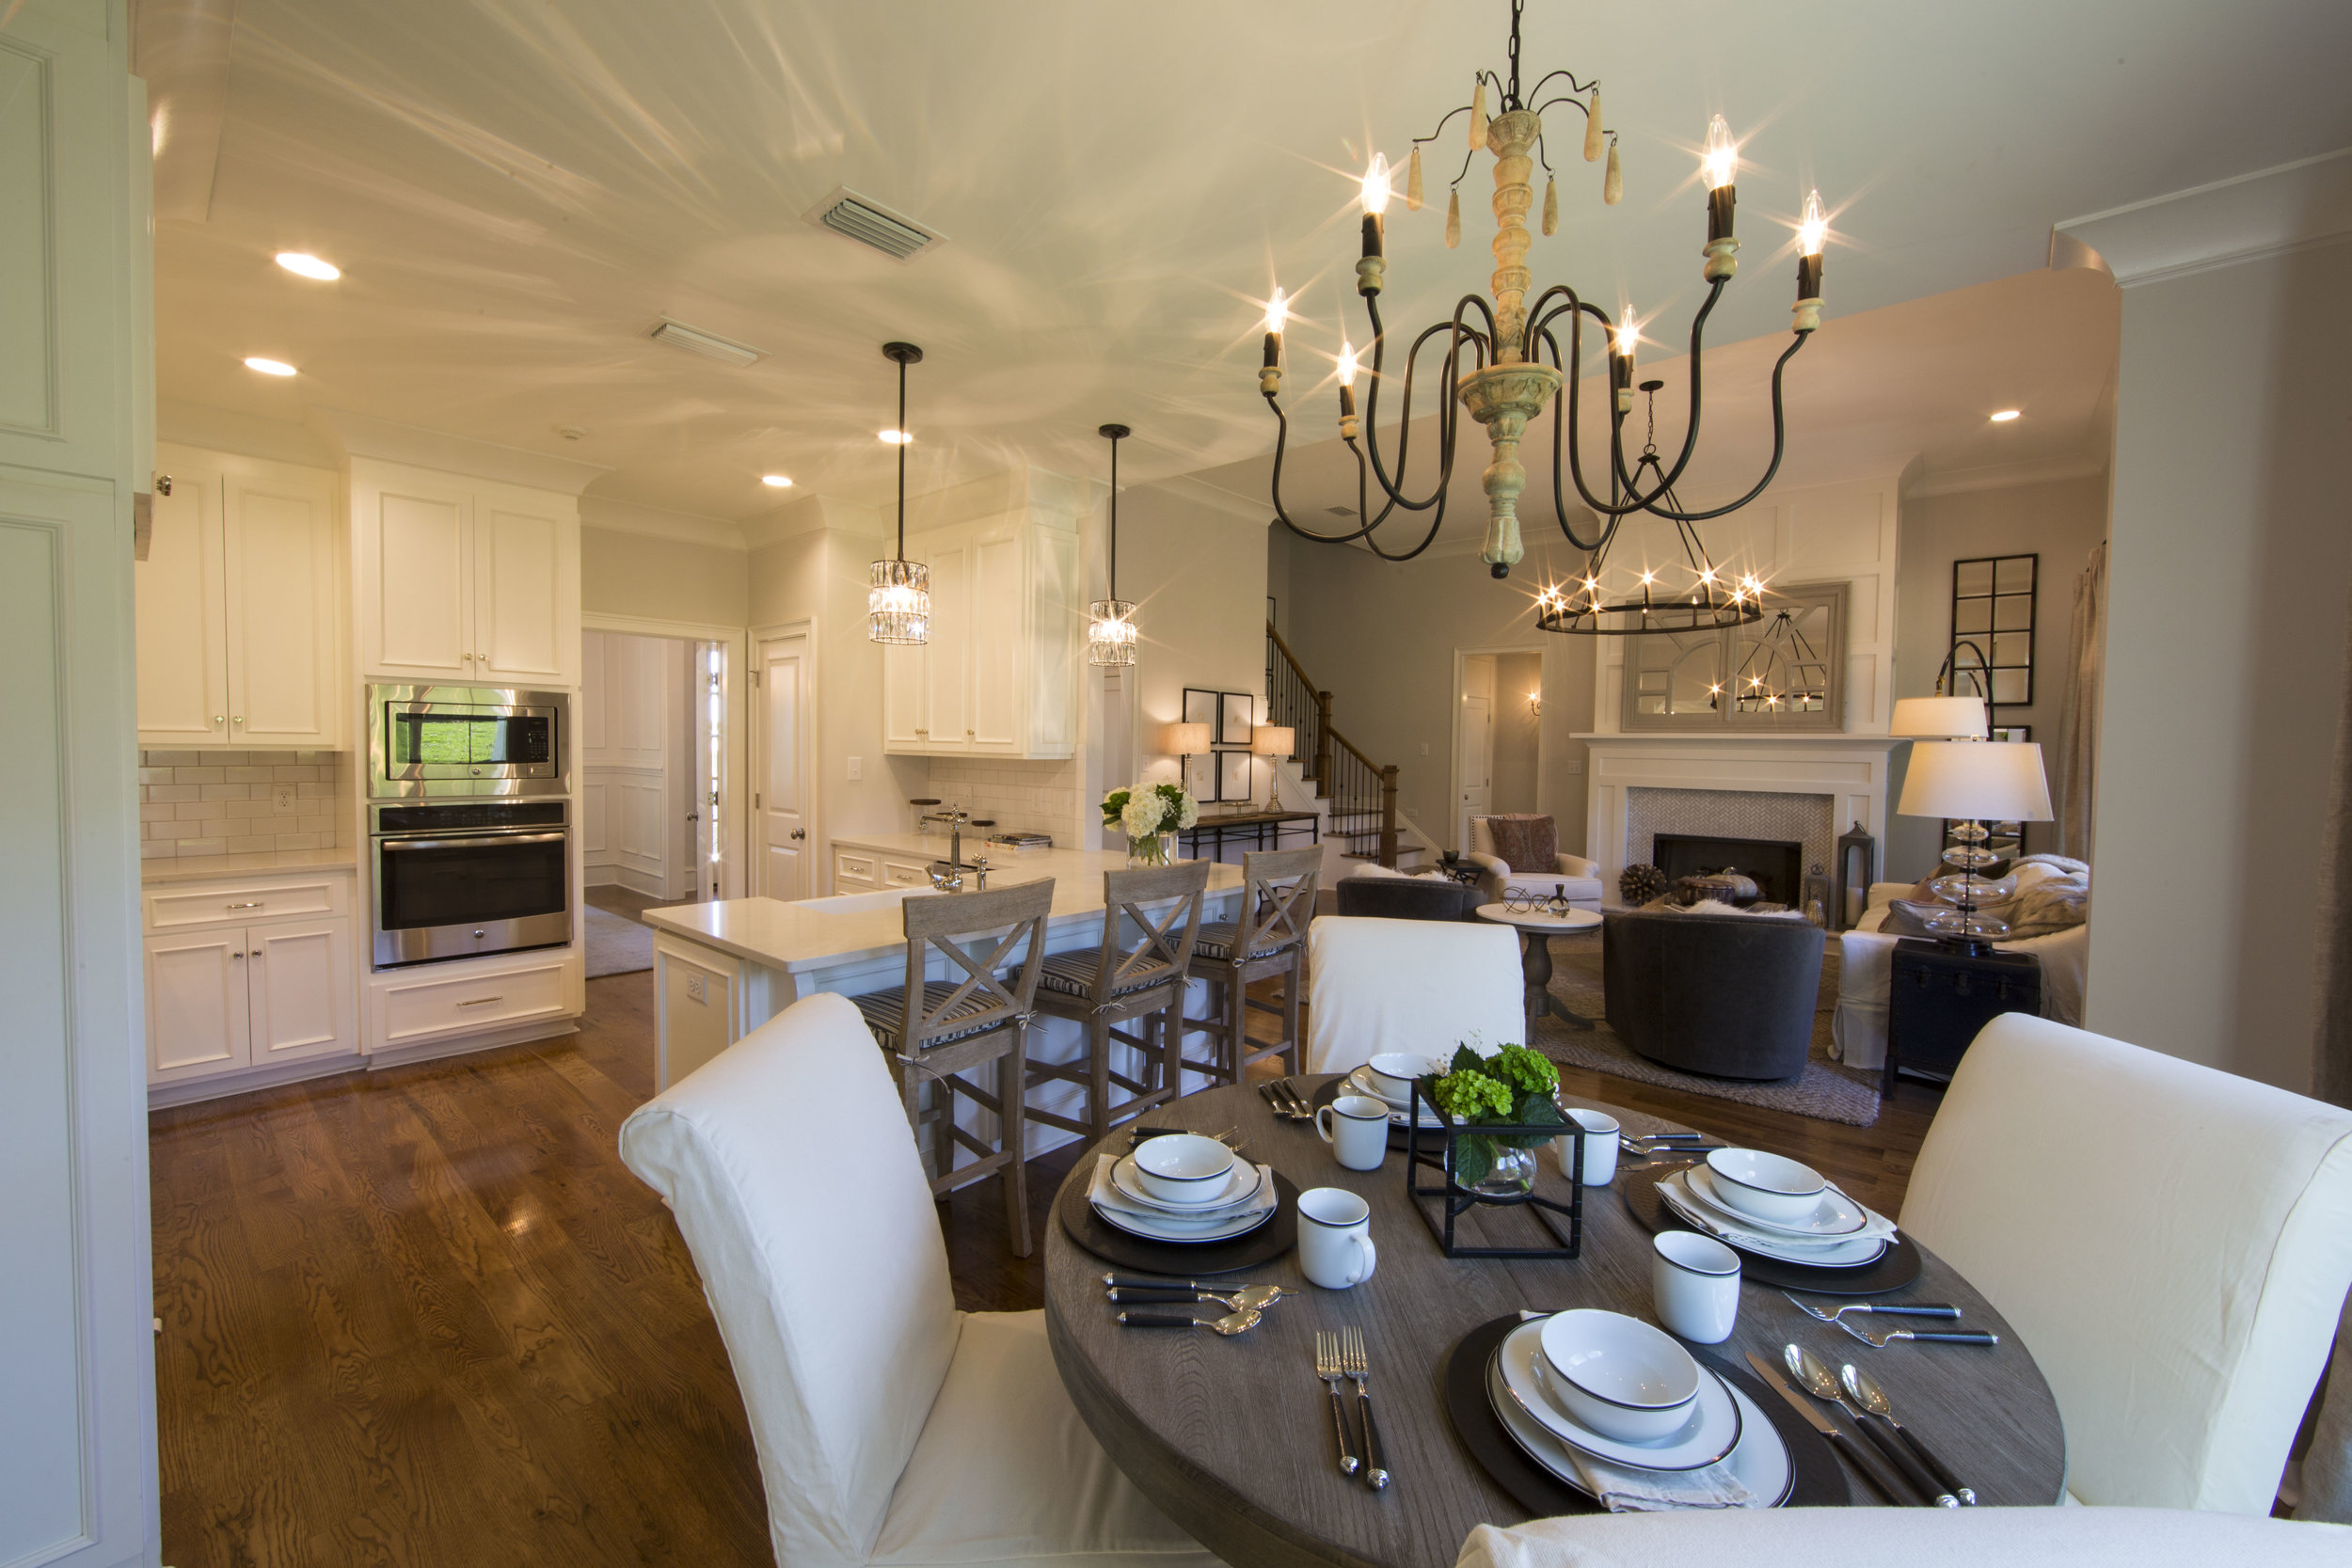 Wynnfield Court Parade of Homes 0r7a7014.jpg